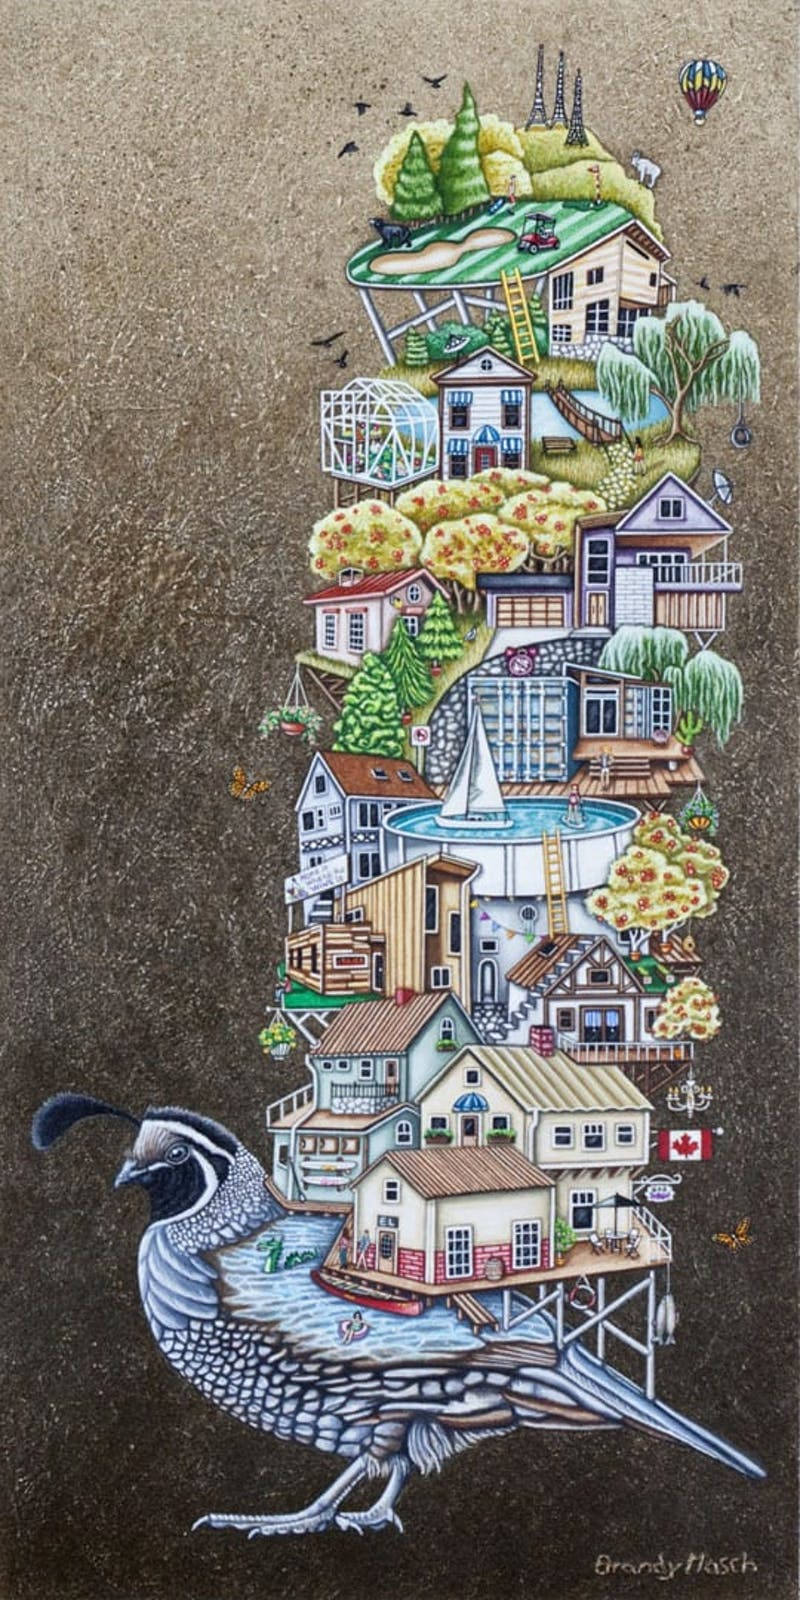 Quailowna by Brandy Masch, 2015 Mixed Media - (20x10 in)